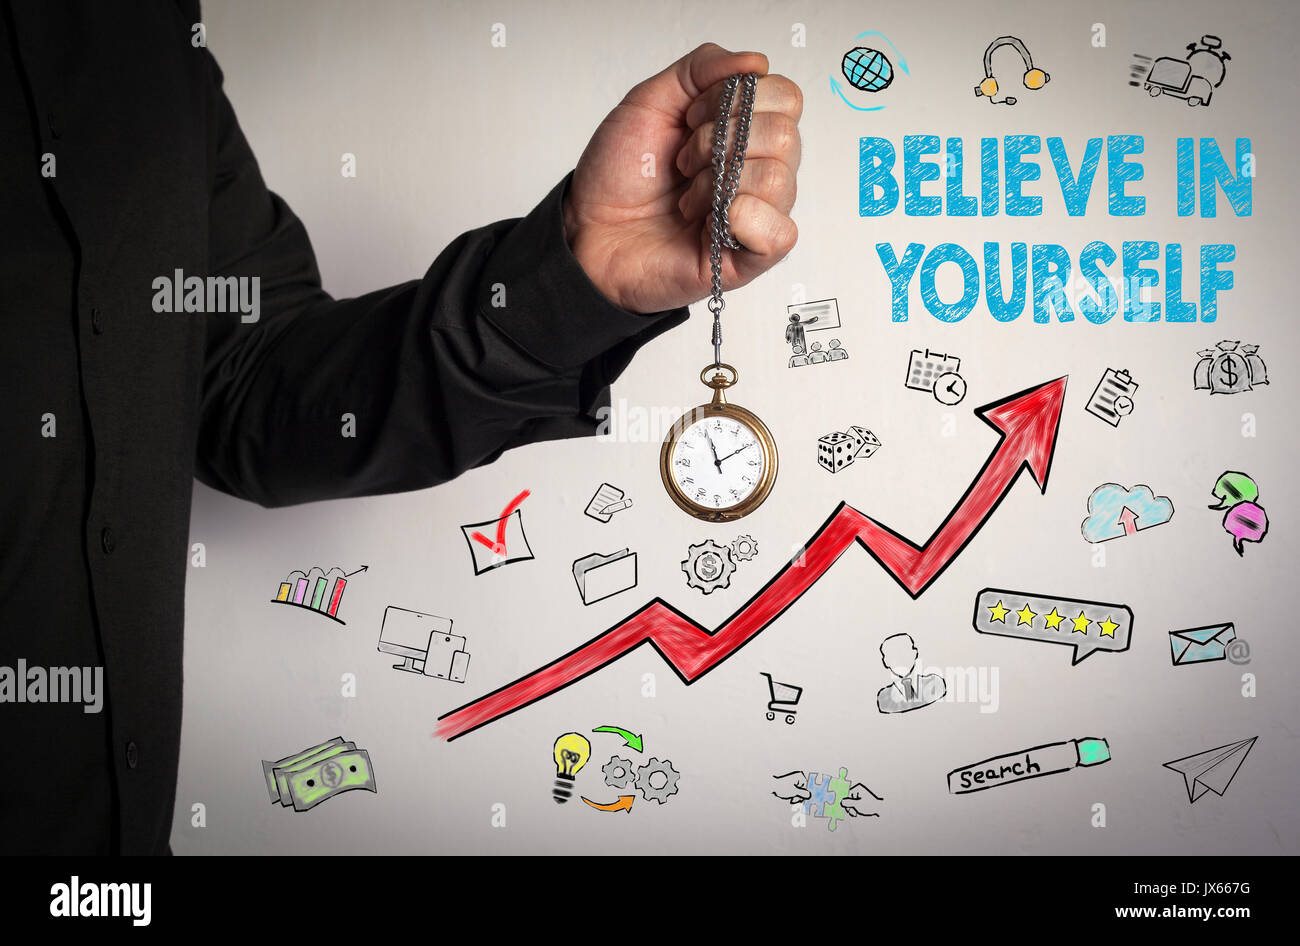 Believe In Yourself concept. Red Arrow and Icons Around. Man holding chain clock on white background. - Stock Image